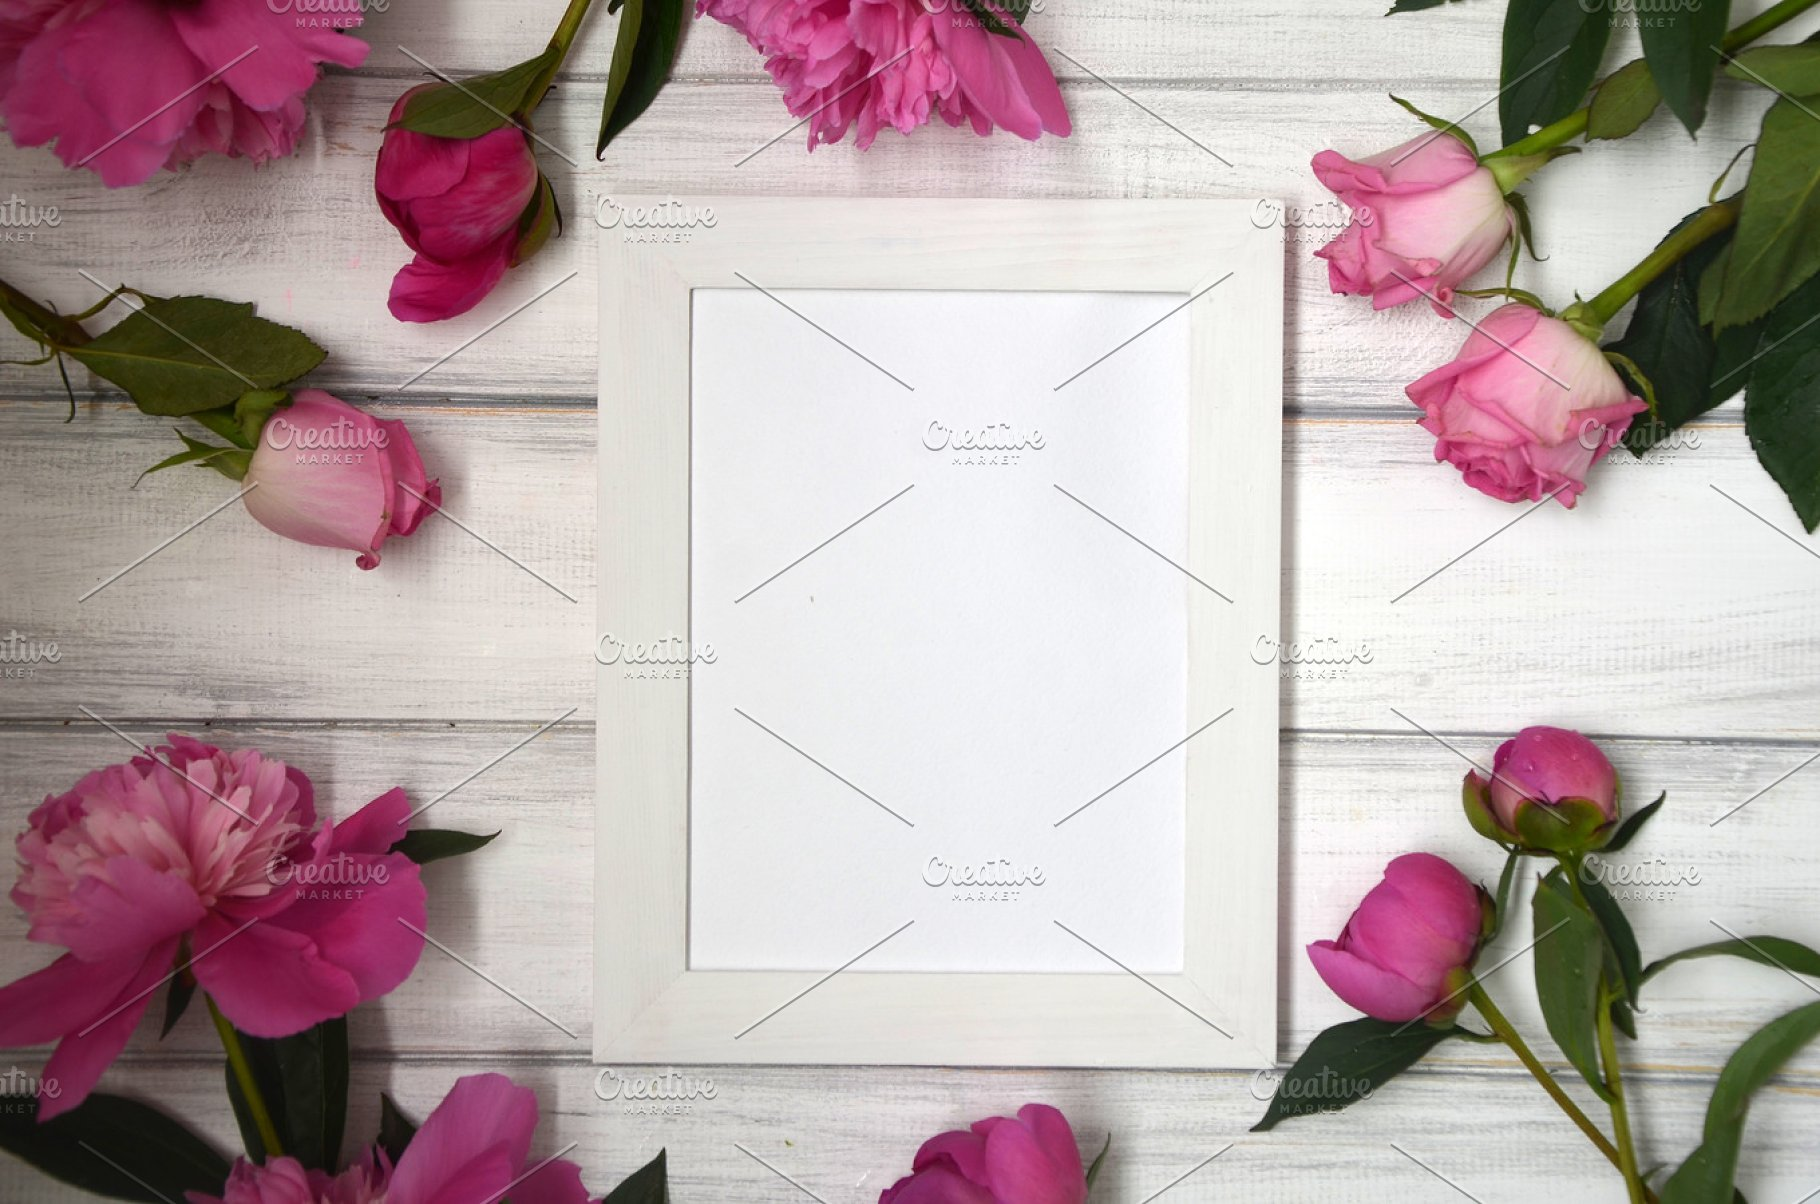 Stunning pink peonies on white rustic wooden background  Copy space  White  frame for picture or photo